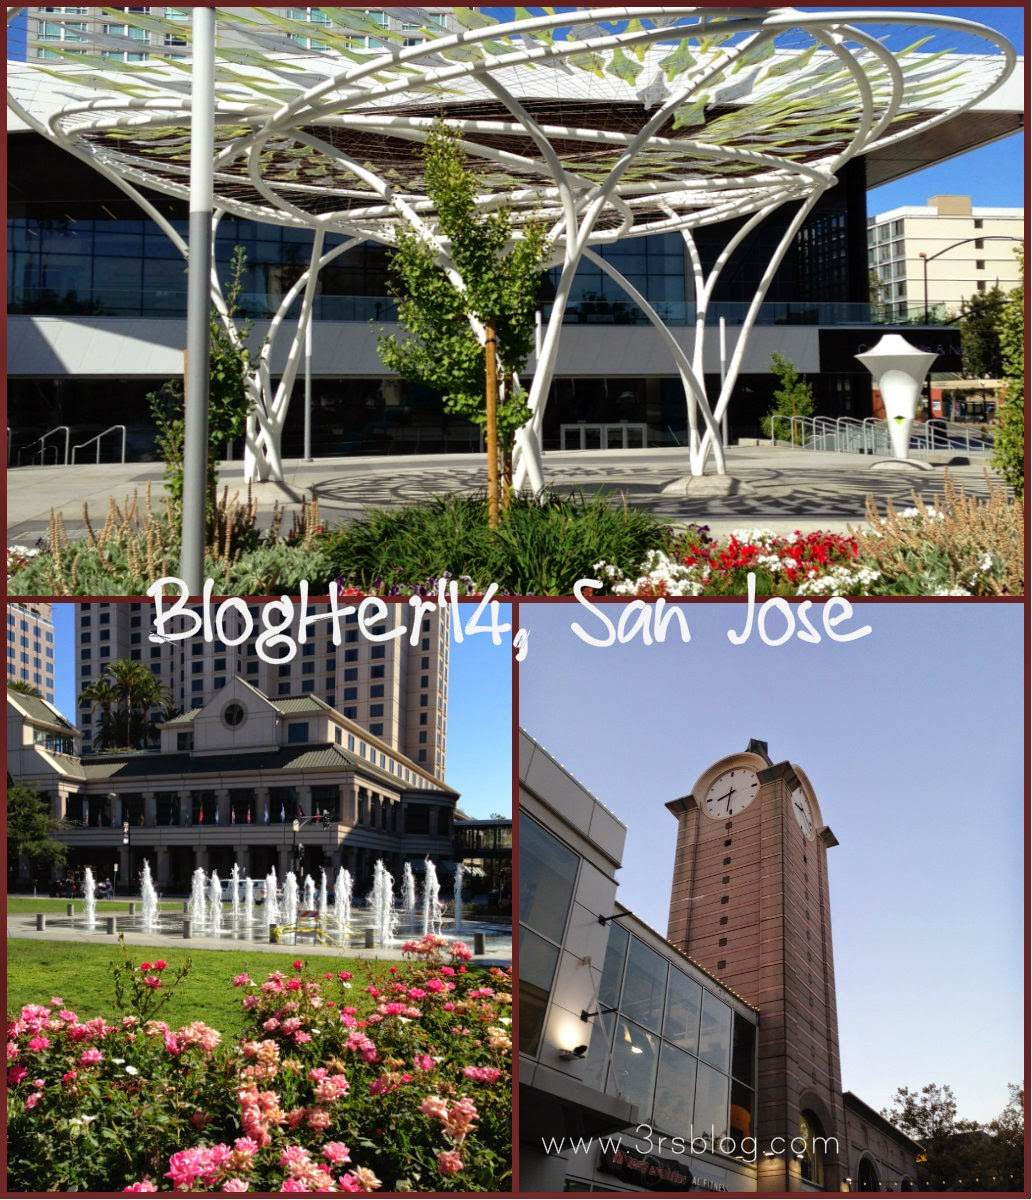 San Jose Convention Center area collage BlogHer14 The 3Rs Blog